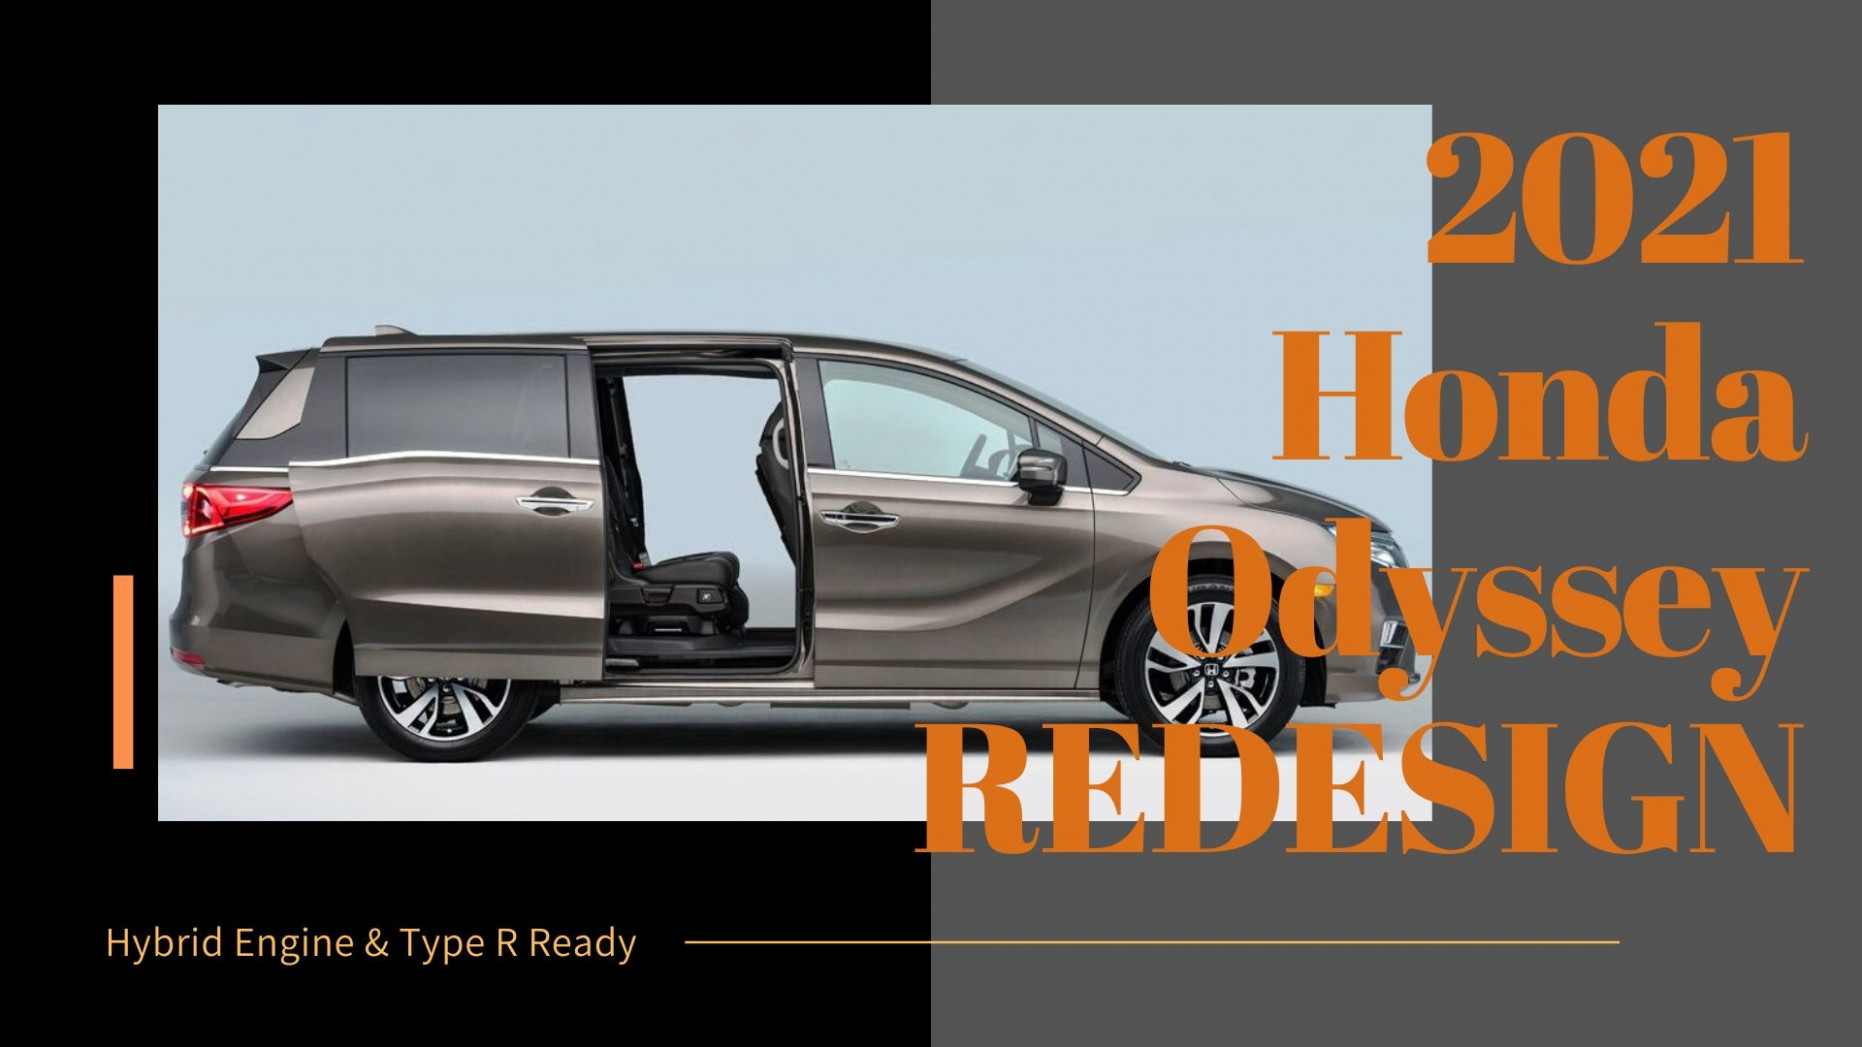 Price, Design and Review When Does 2022 Honda Odyssey Come Out